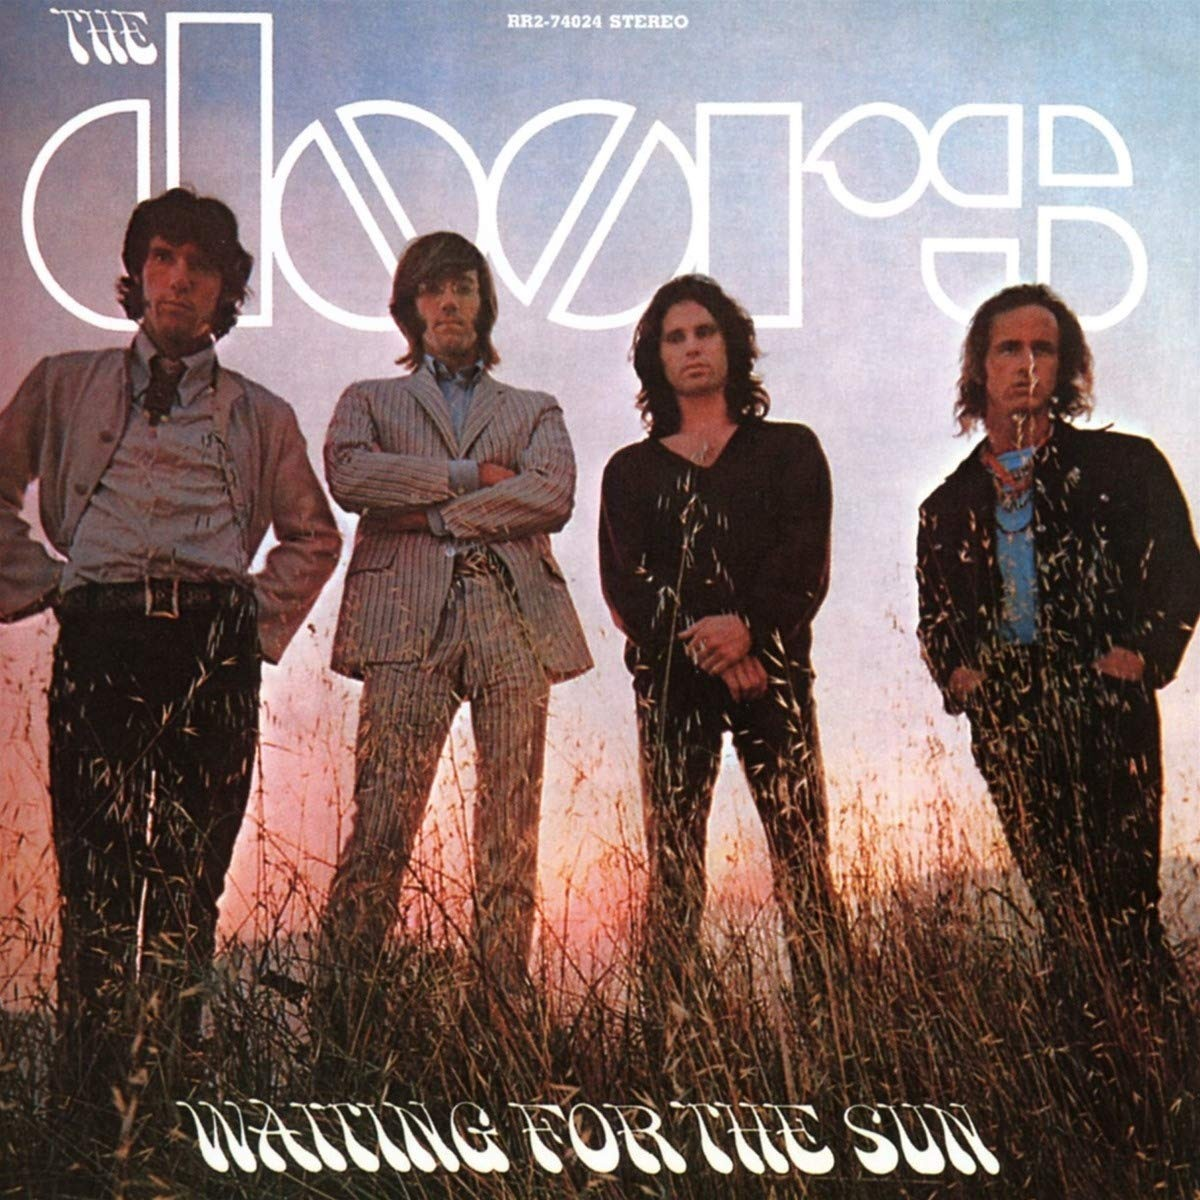 ¿Qué Estás Escuchando? - Página 38 Cd-the-doors-waiting-for-the-sun-remastered-D_NQ_NP_740360-MLA29280962134_012019-F